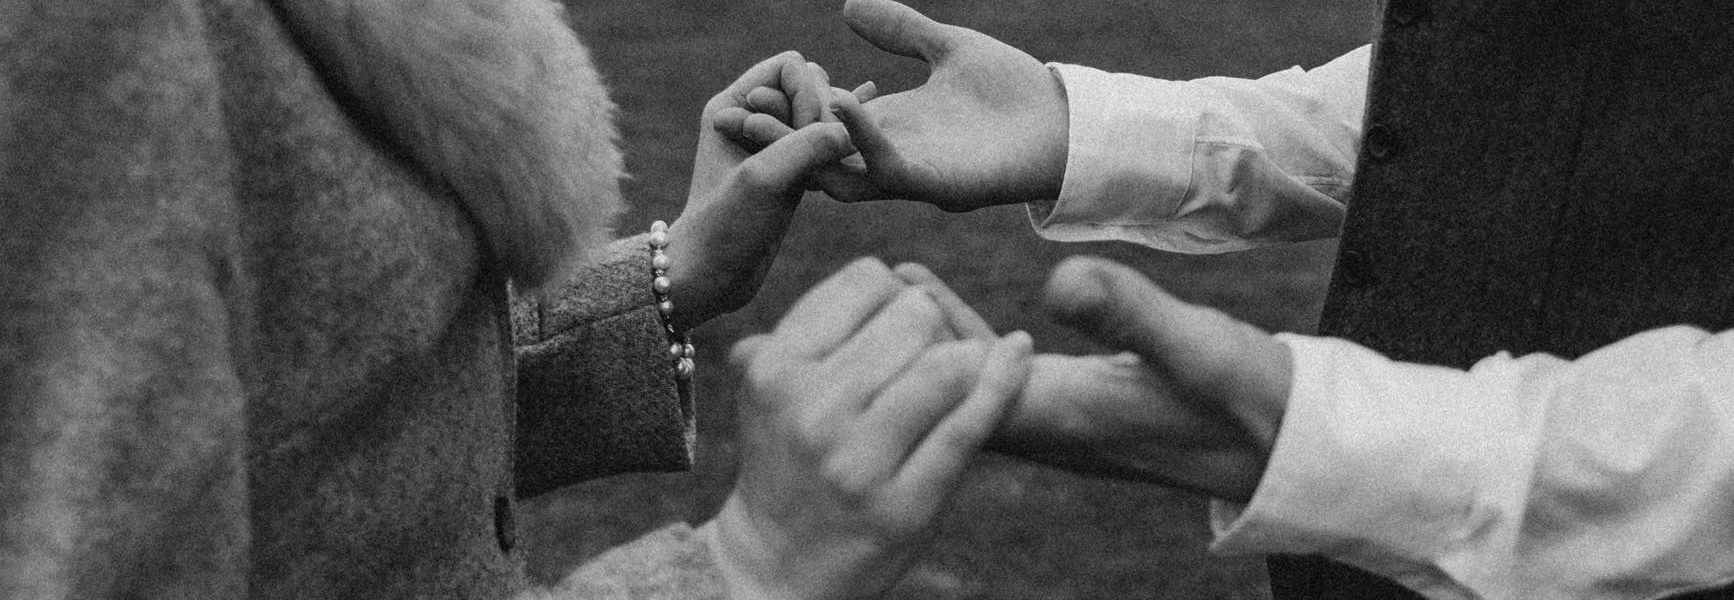 monochrome photo of people holding hands